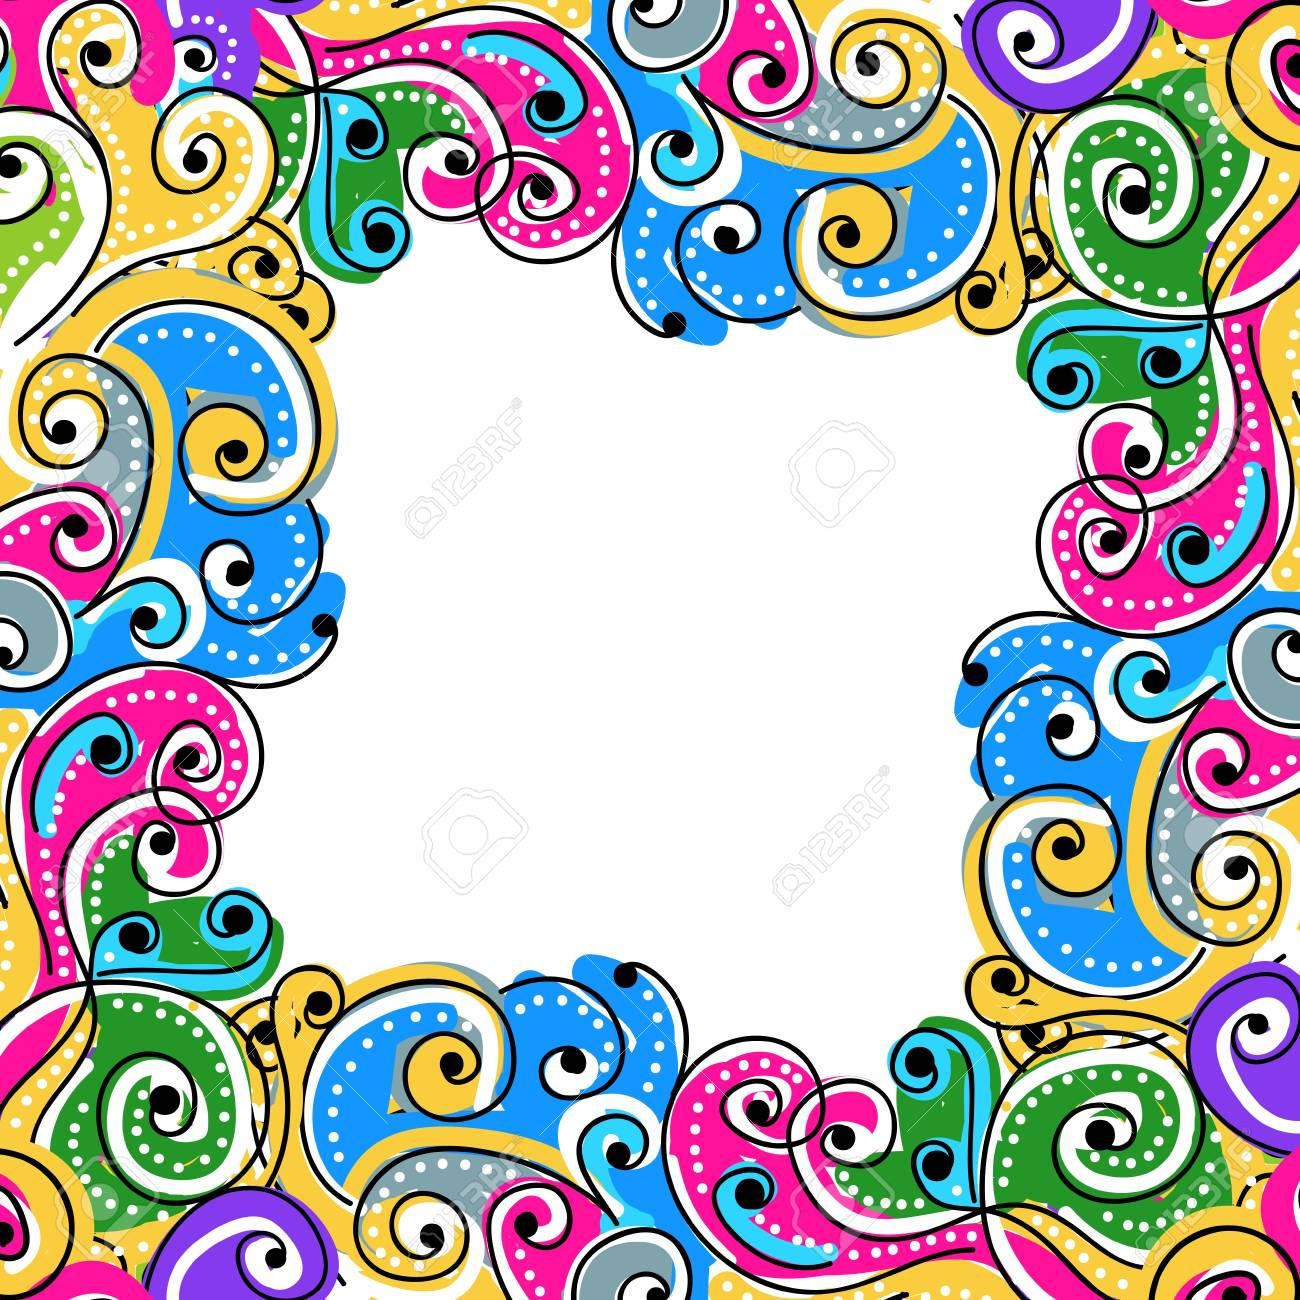 Wave hand drawn frame for your design, abstract background - 15359534